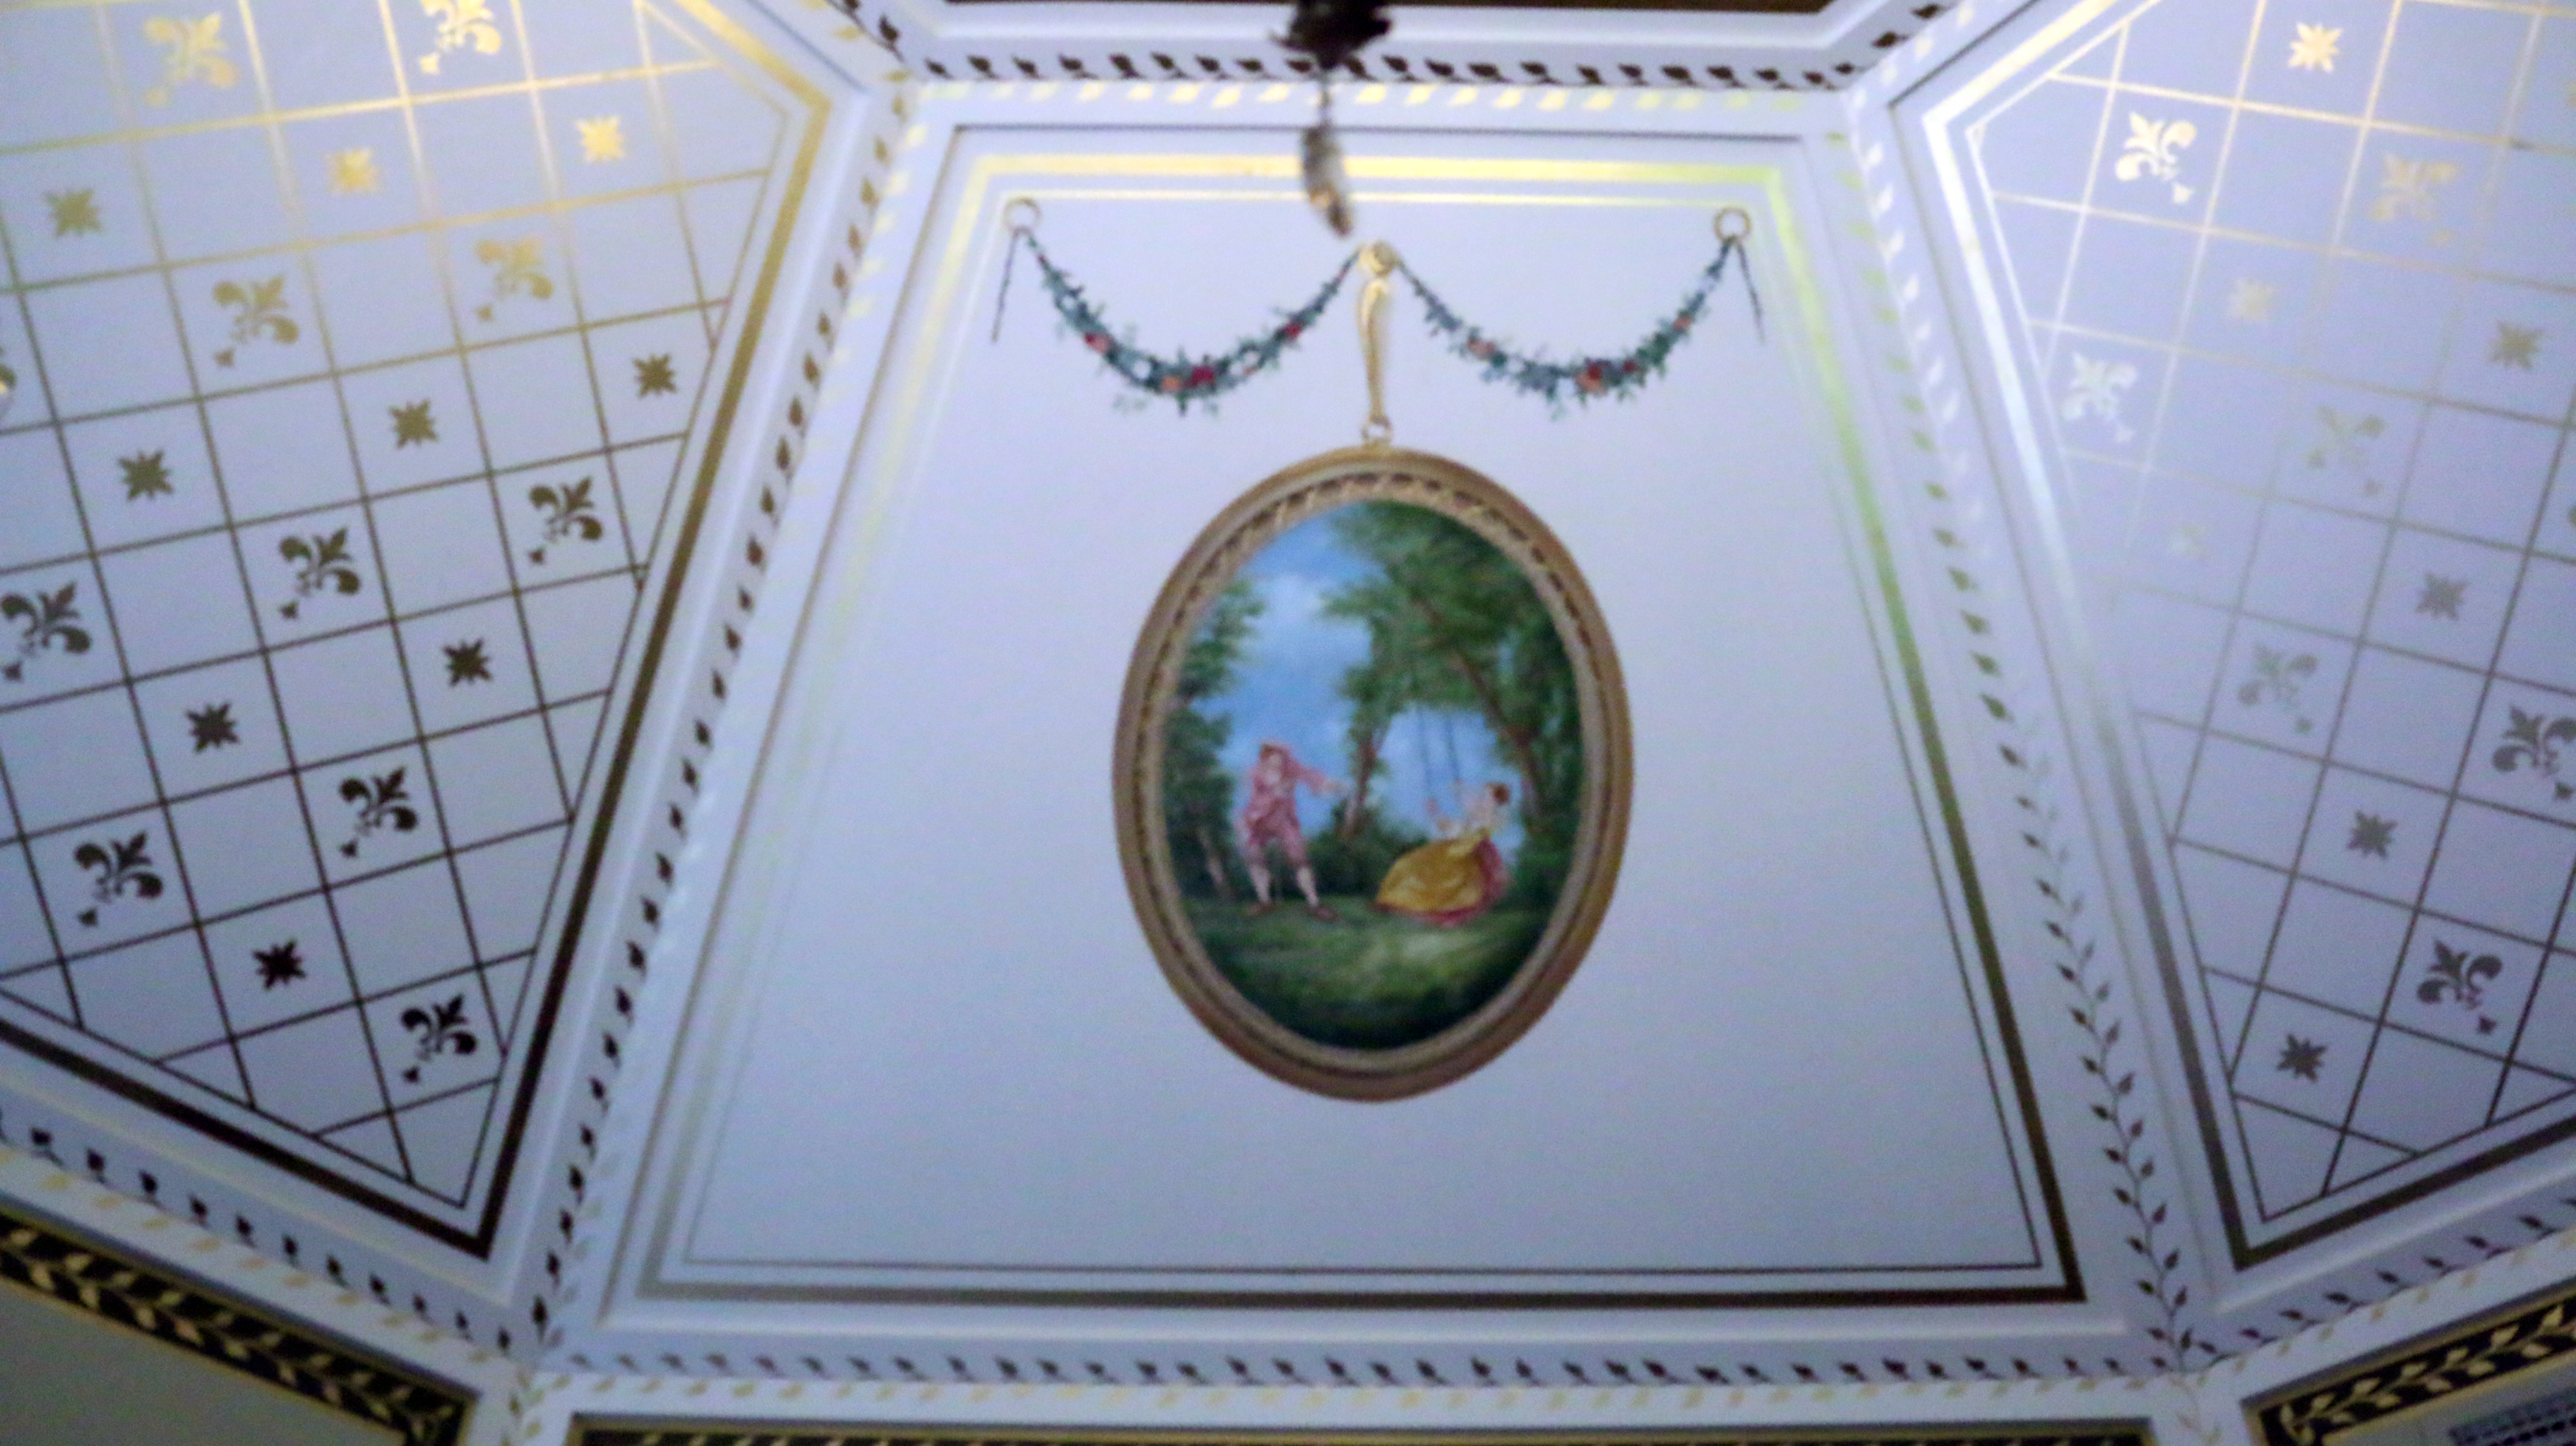 Mural & Ceiling Dome North Caldwell